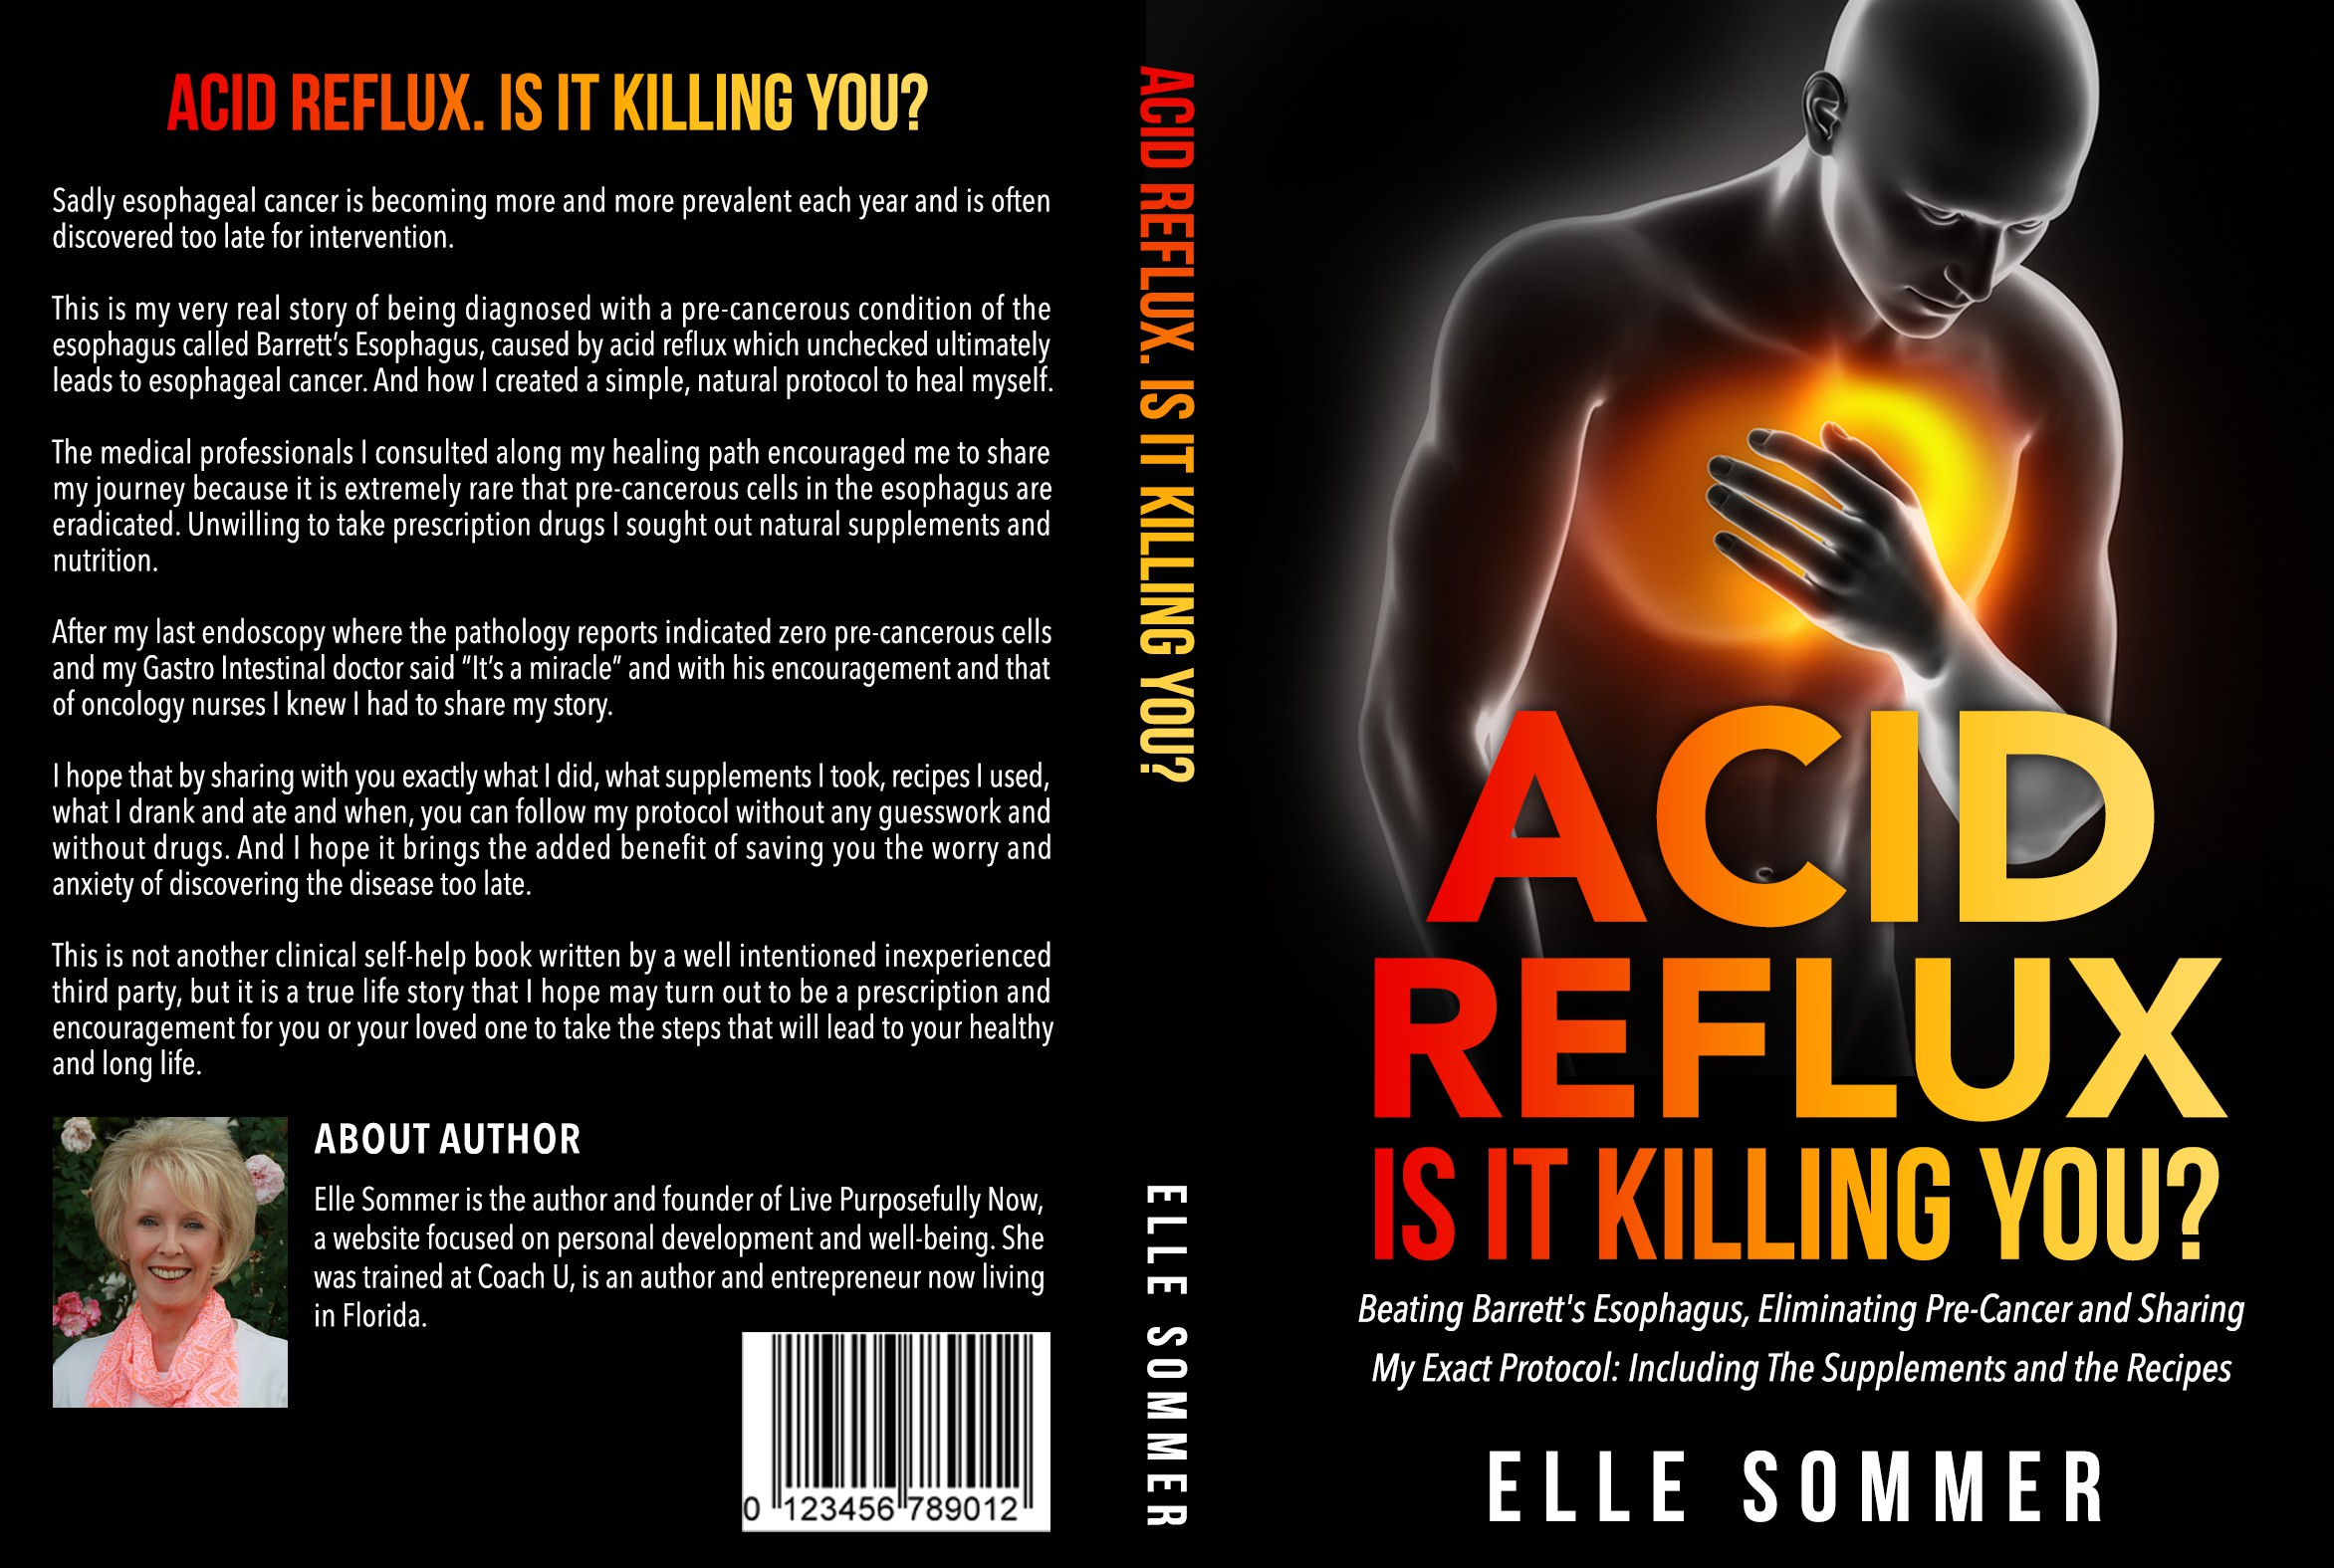 Create an eye-catching cover attracting instant attention. Could be a life saving book!